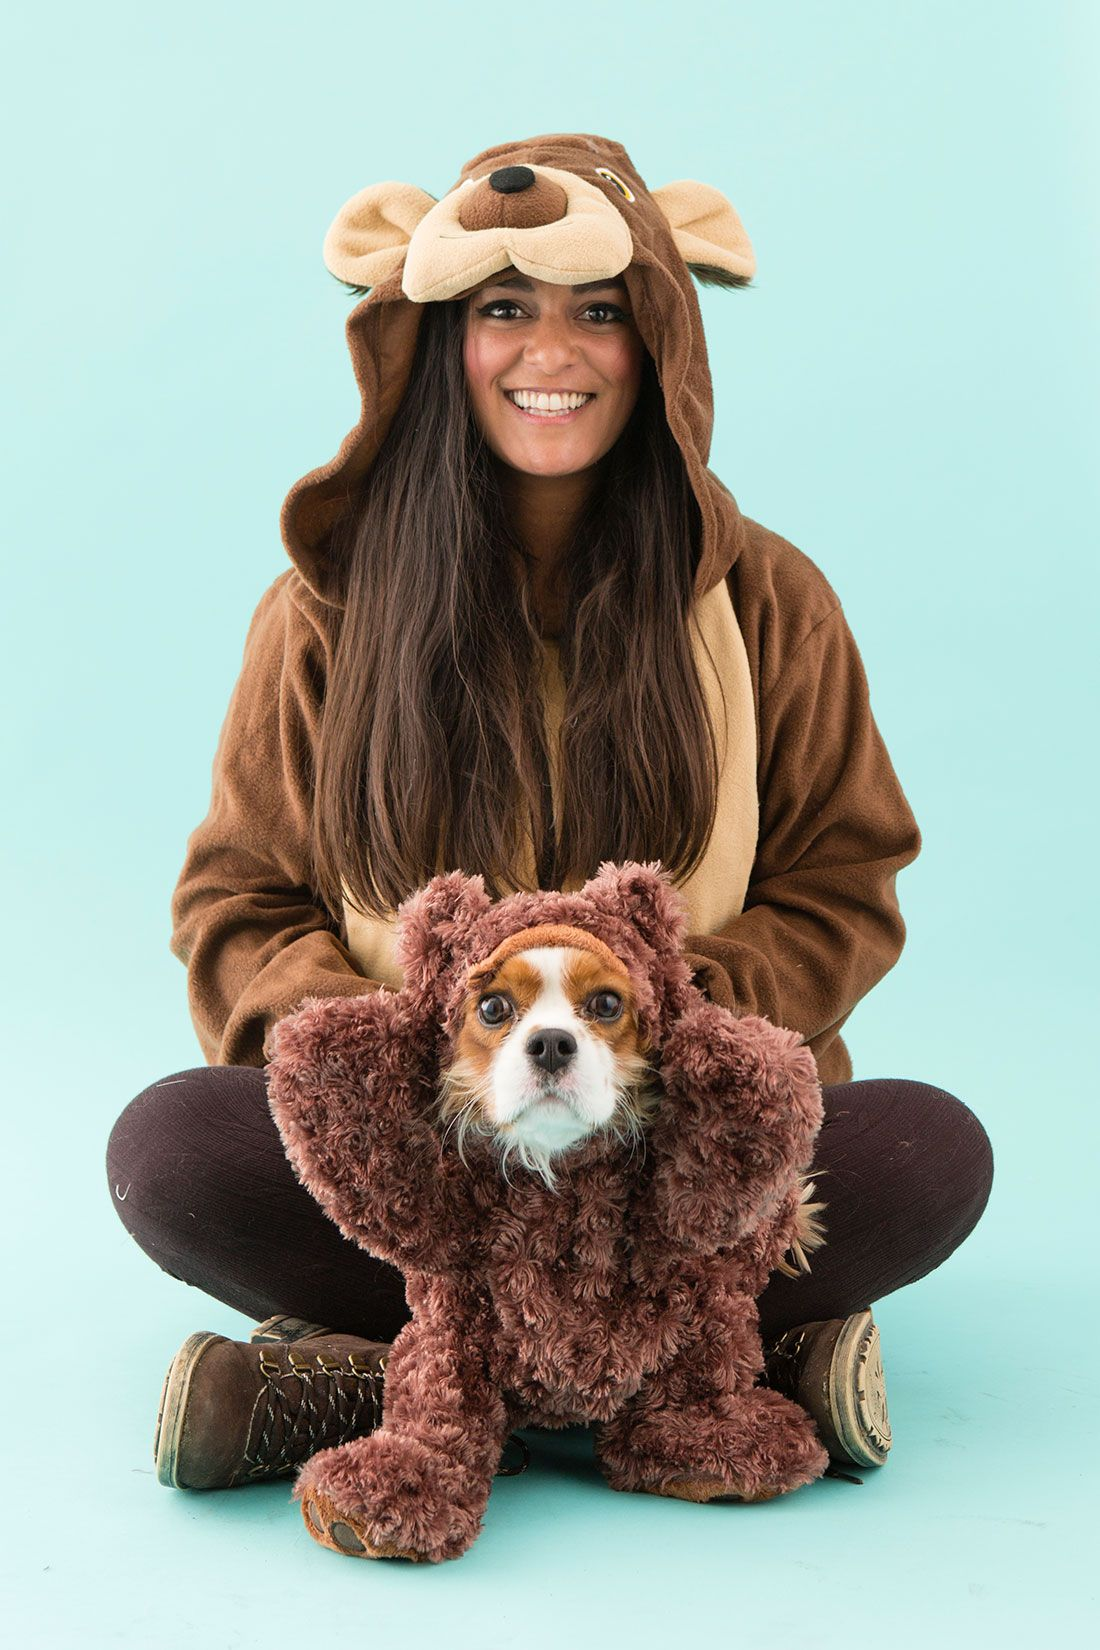 4 Funny DIY Dog and Dog Owner Costumes Teddy bear